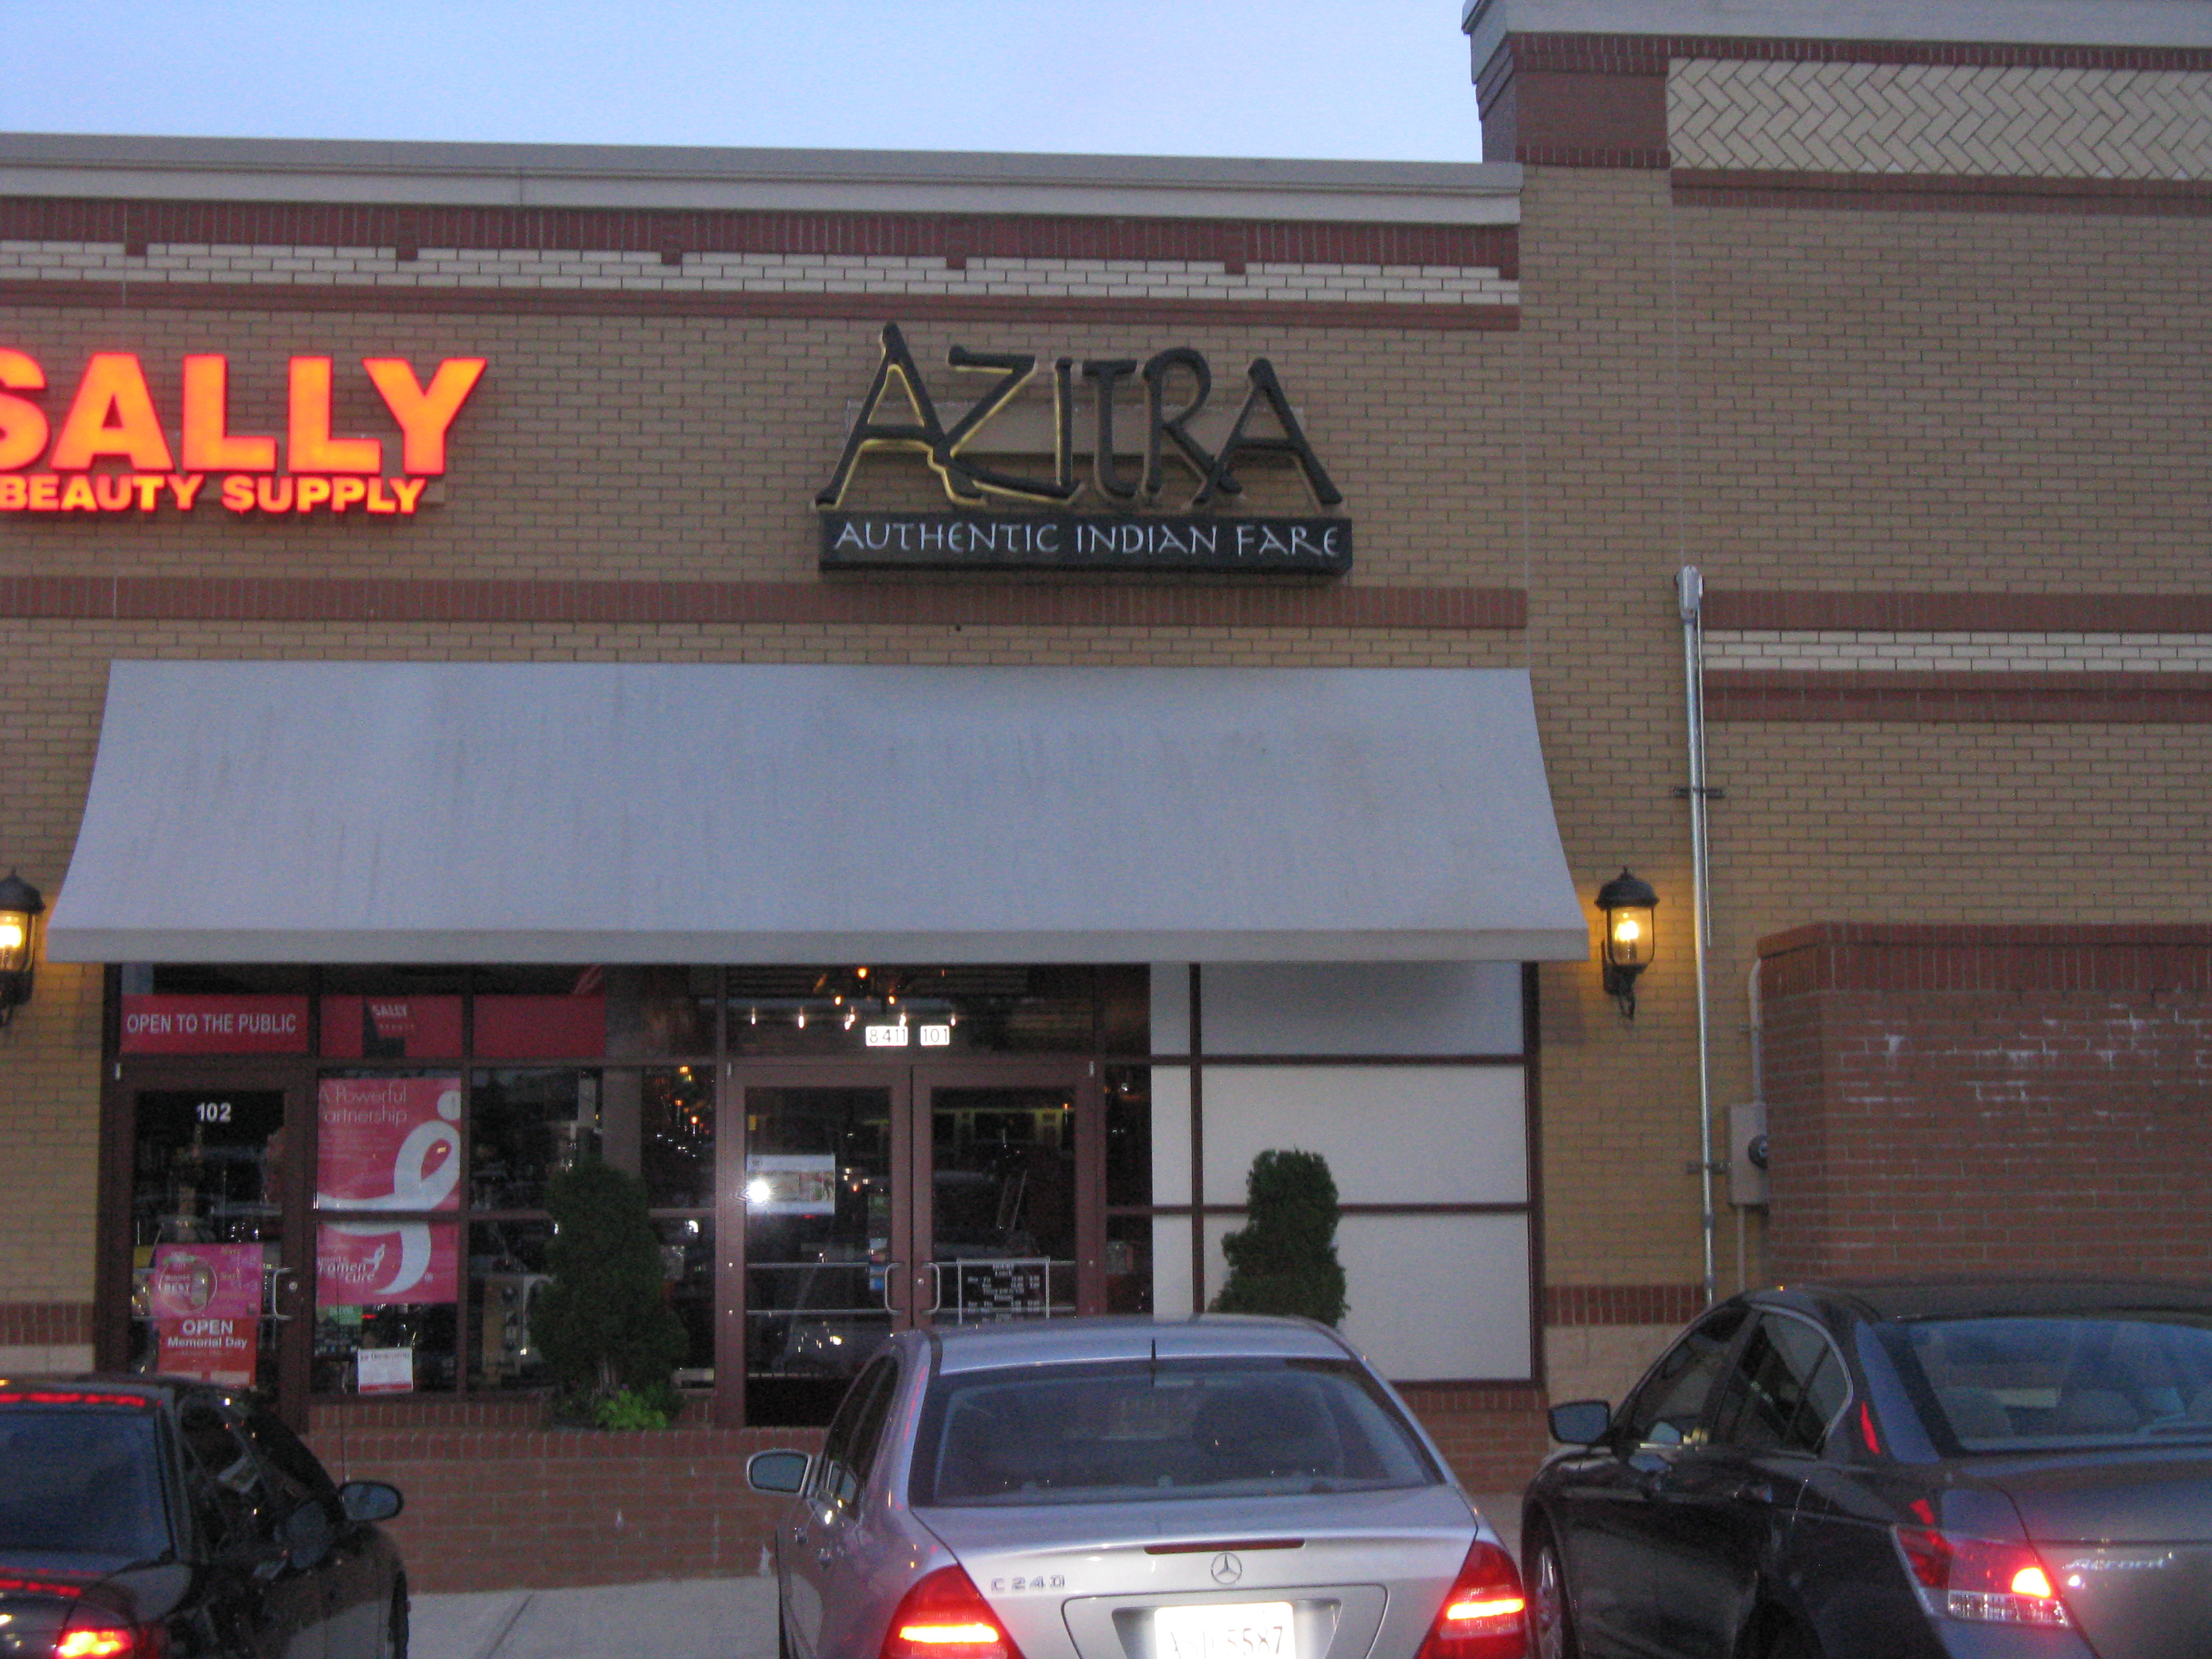 Restaurant Review Azitra Raleigh N C Kel S Cafe Of All